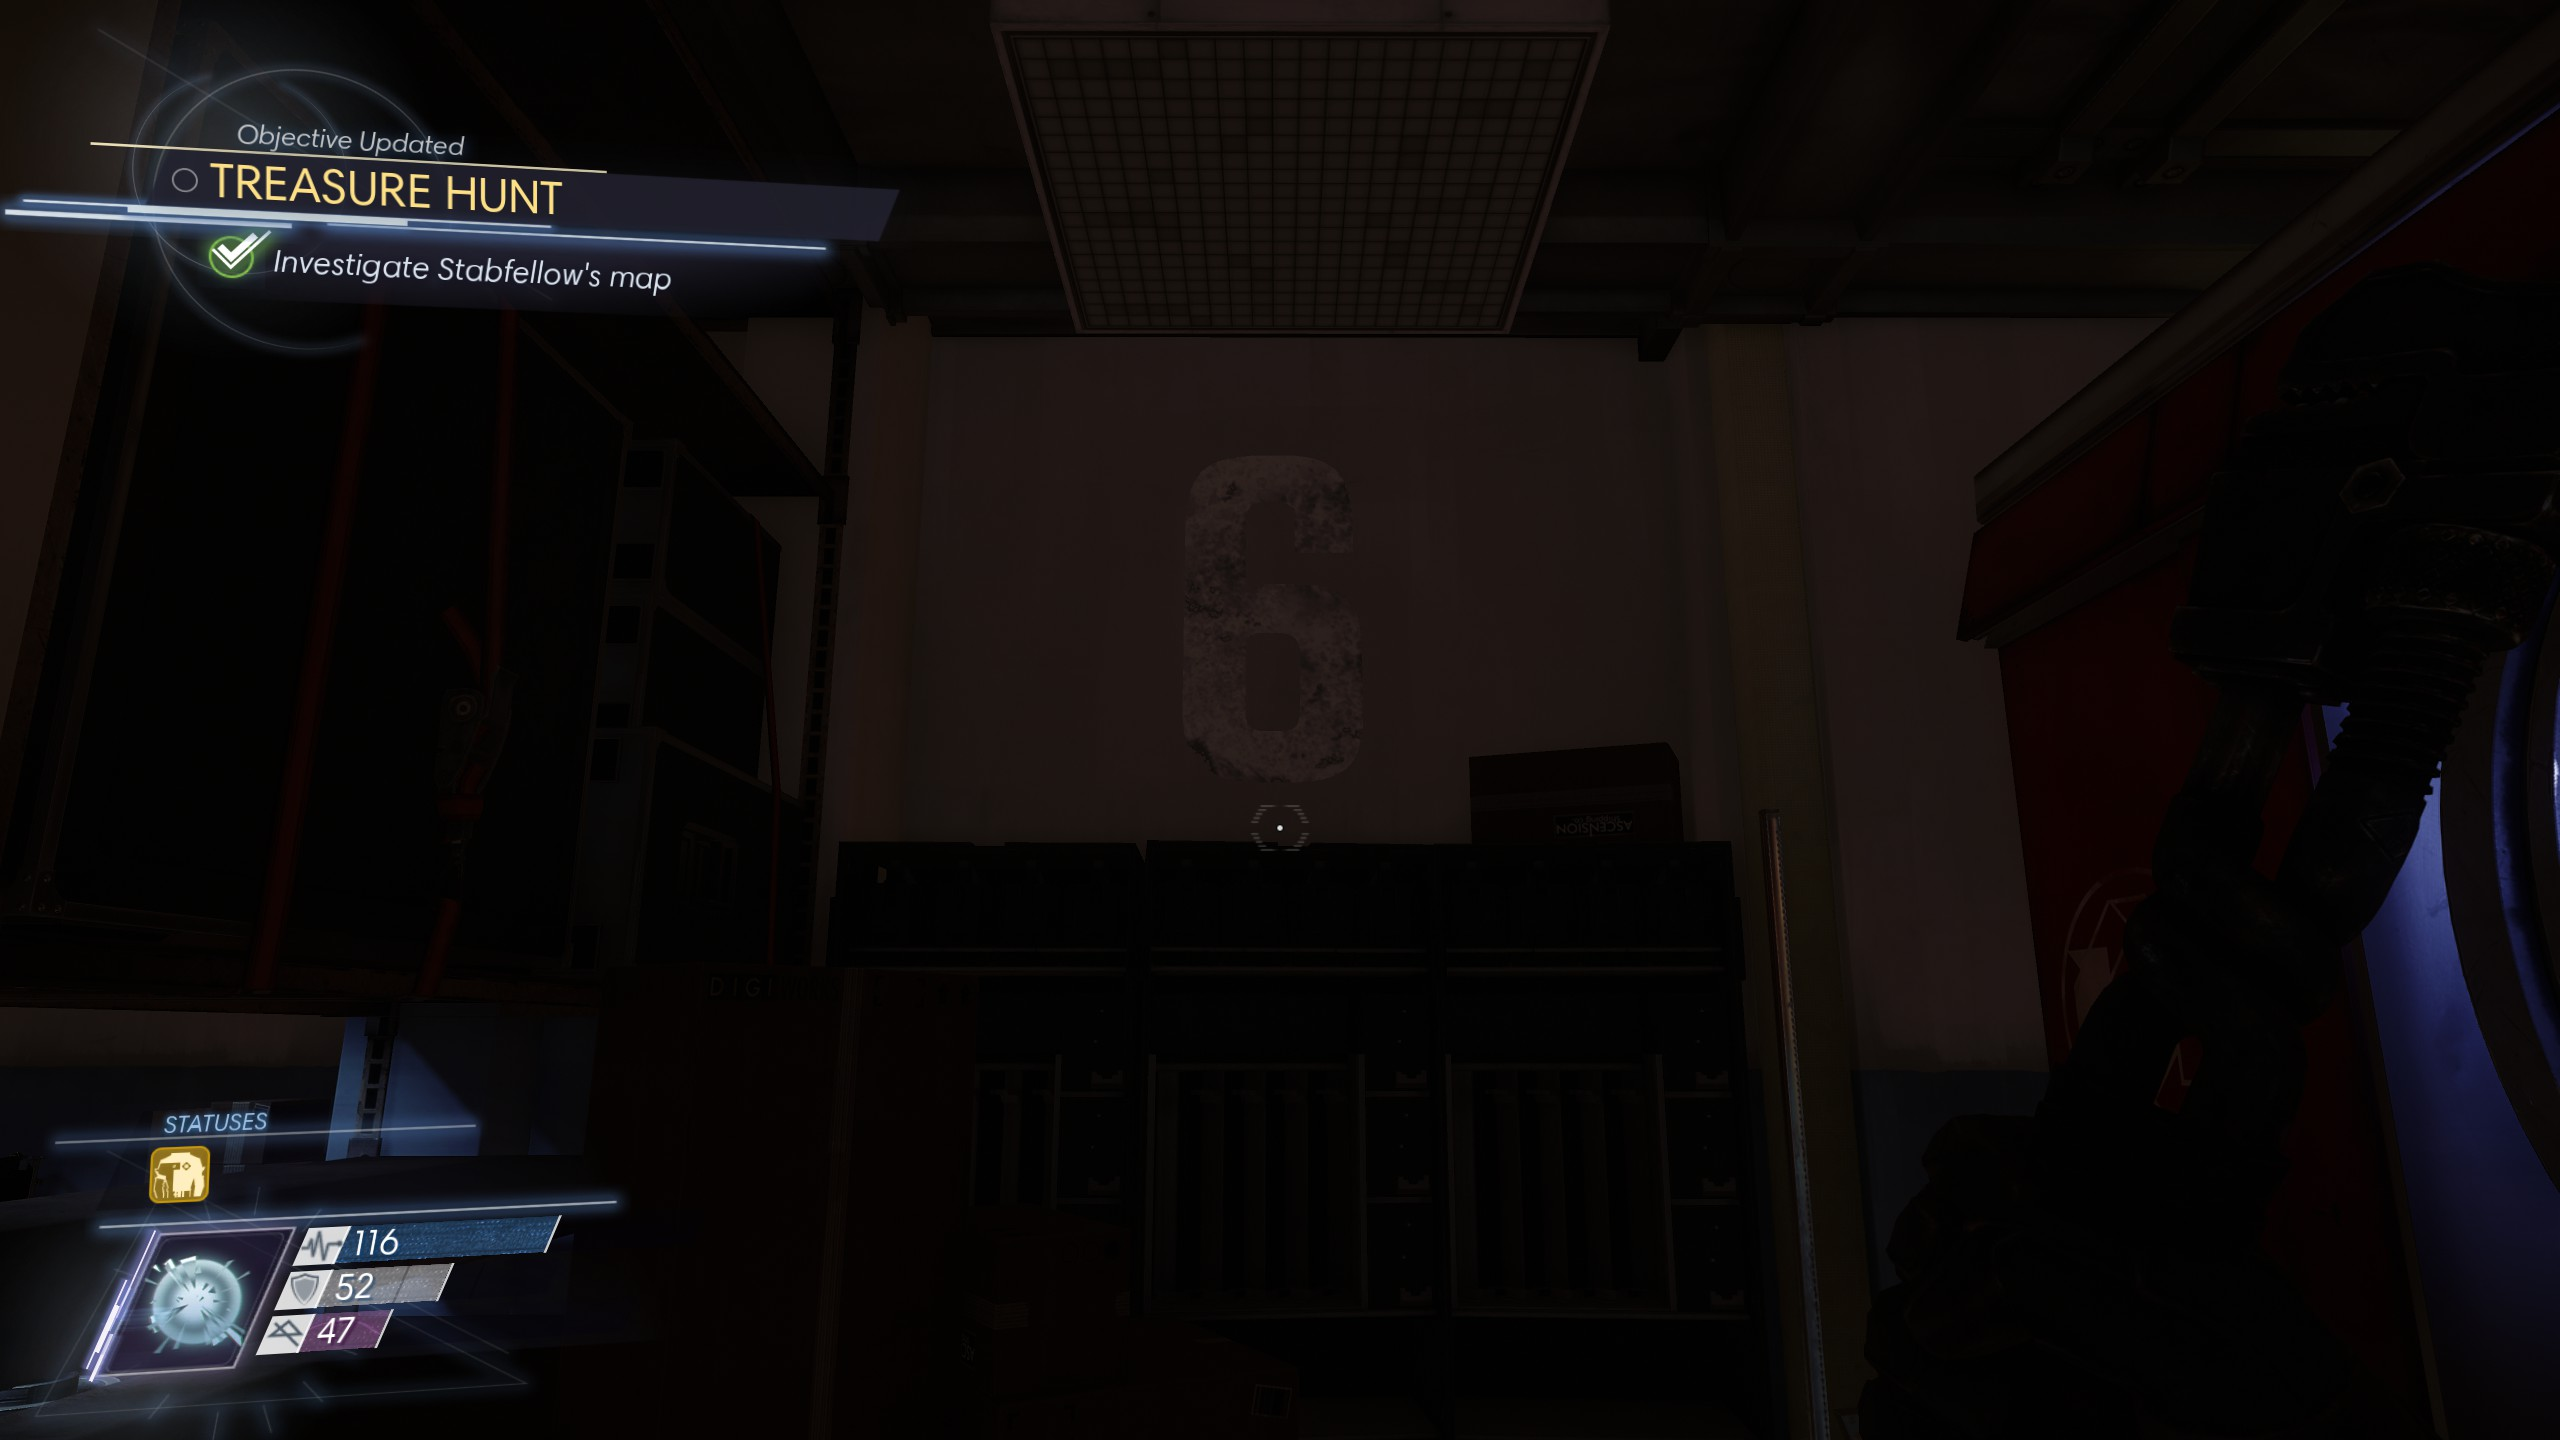 The easiest number to find belongs to Stabfellow. Head to the second floor of the Crew Quarters to find it in the room with the Recycler.